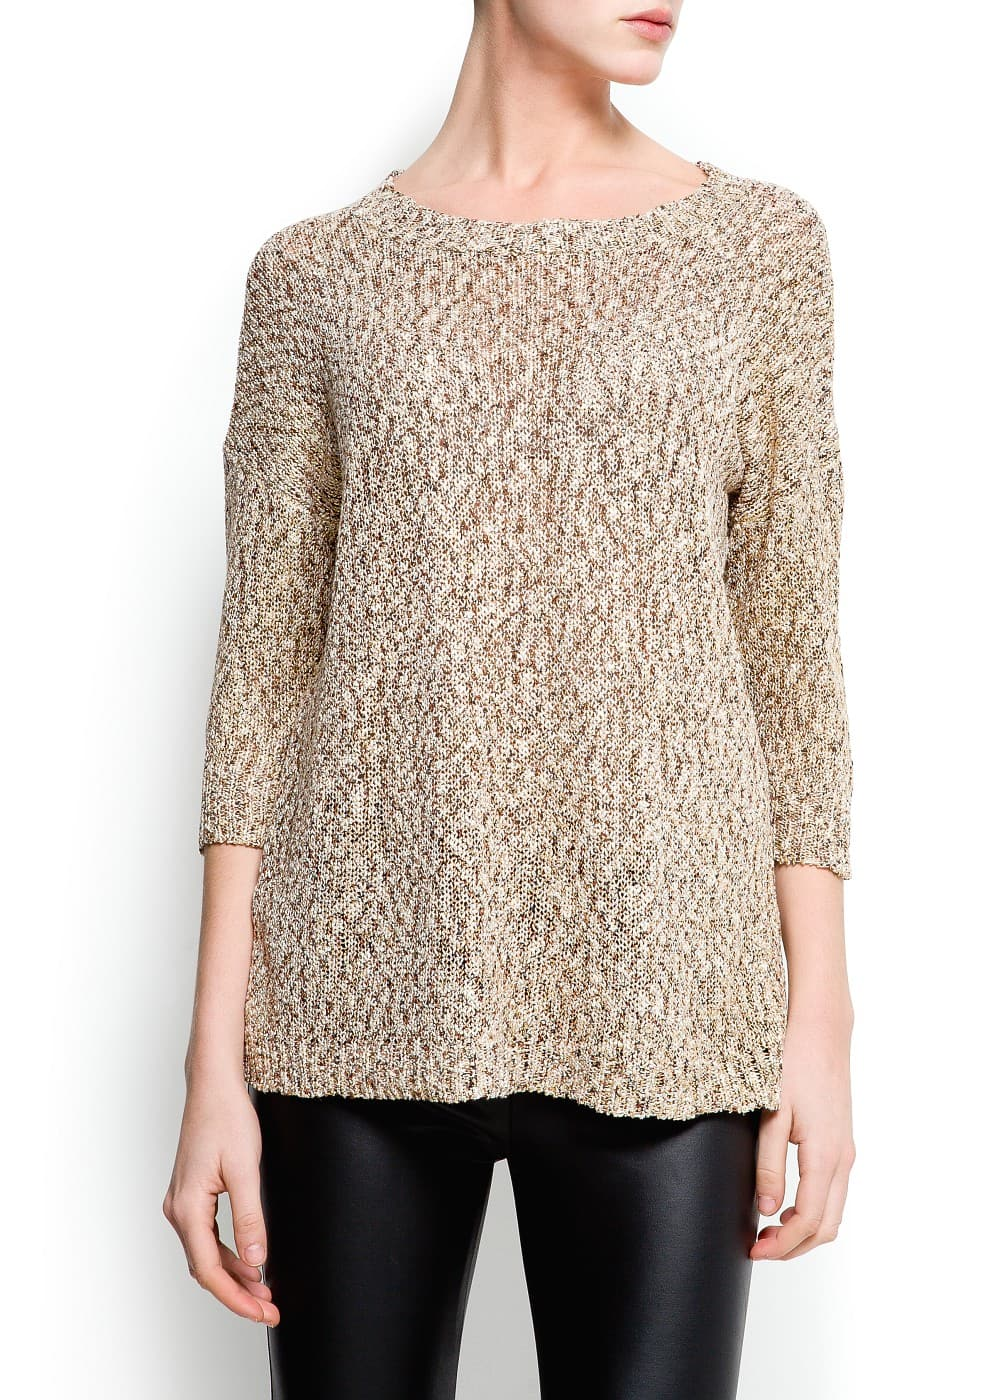 Metallic flecked sweater